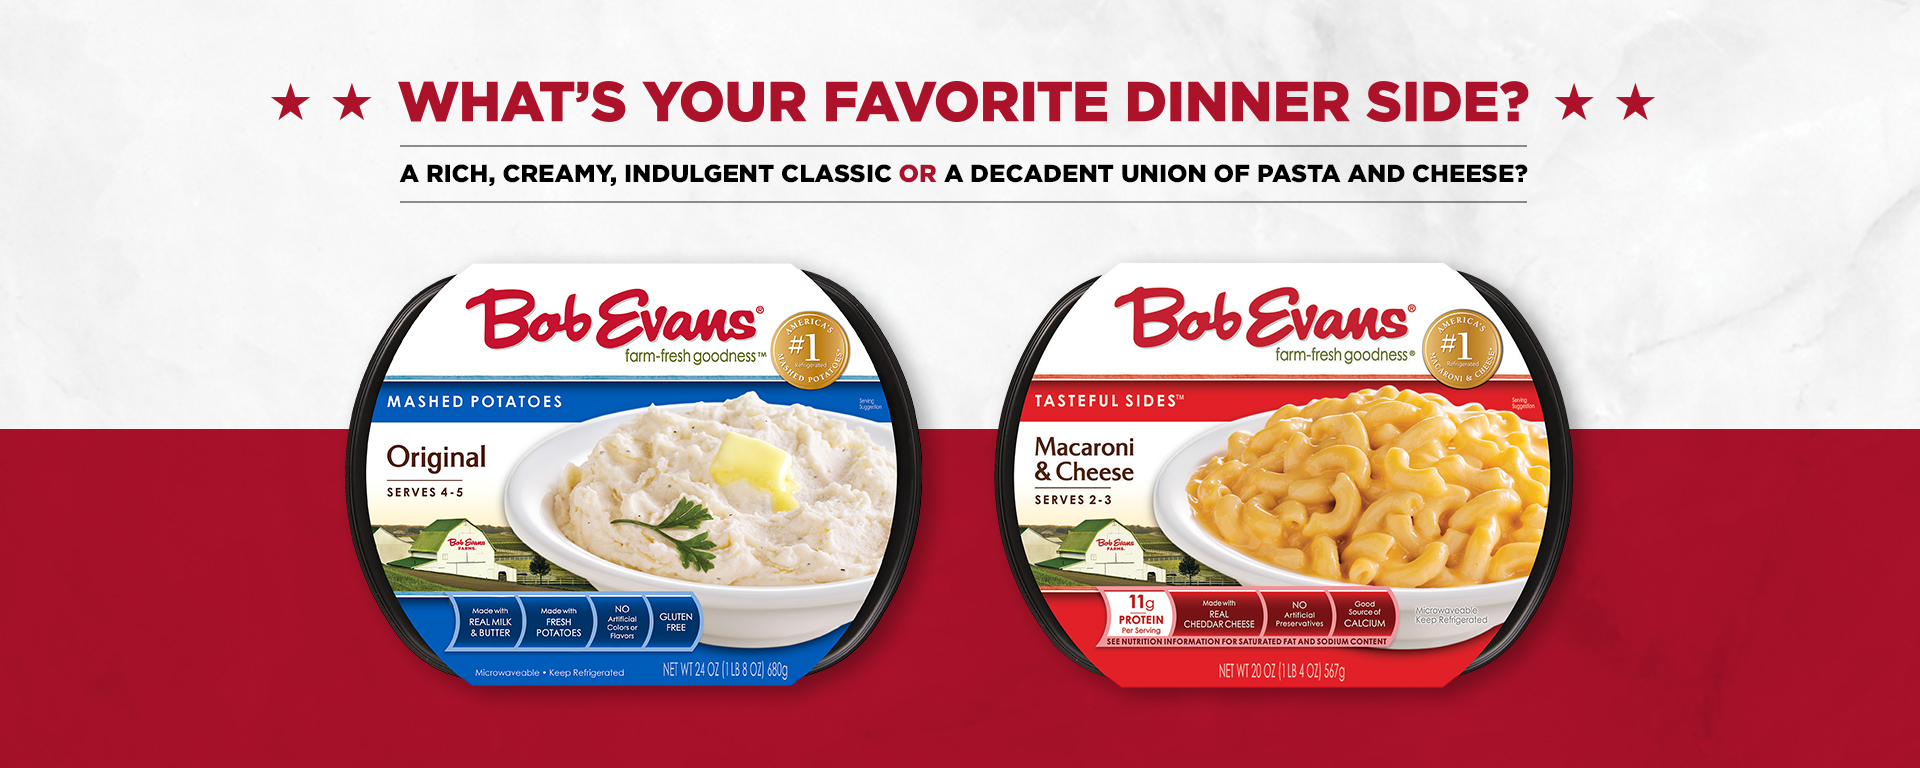 What's Your Favorite Bob Evans Dinner Side?